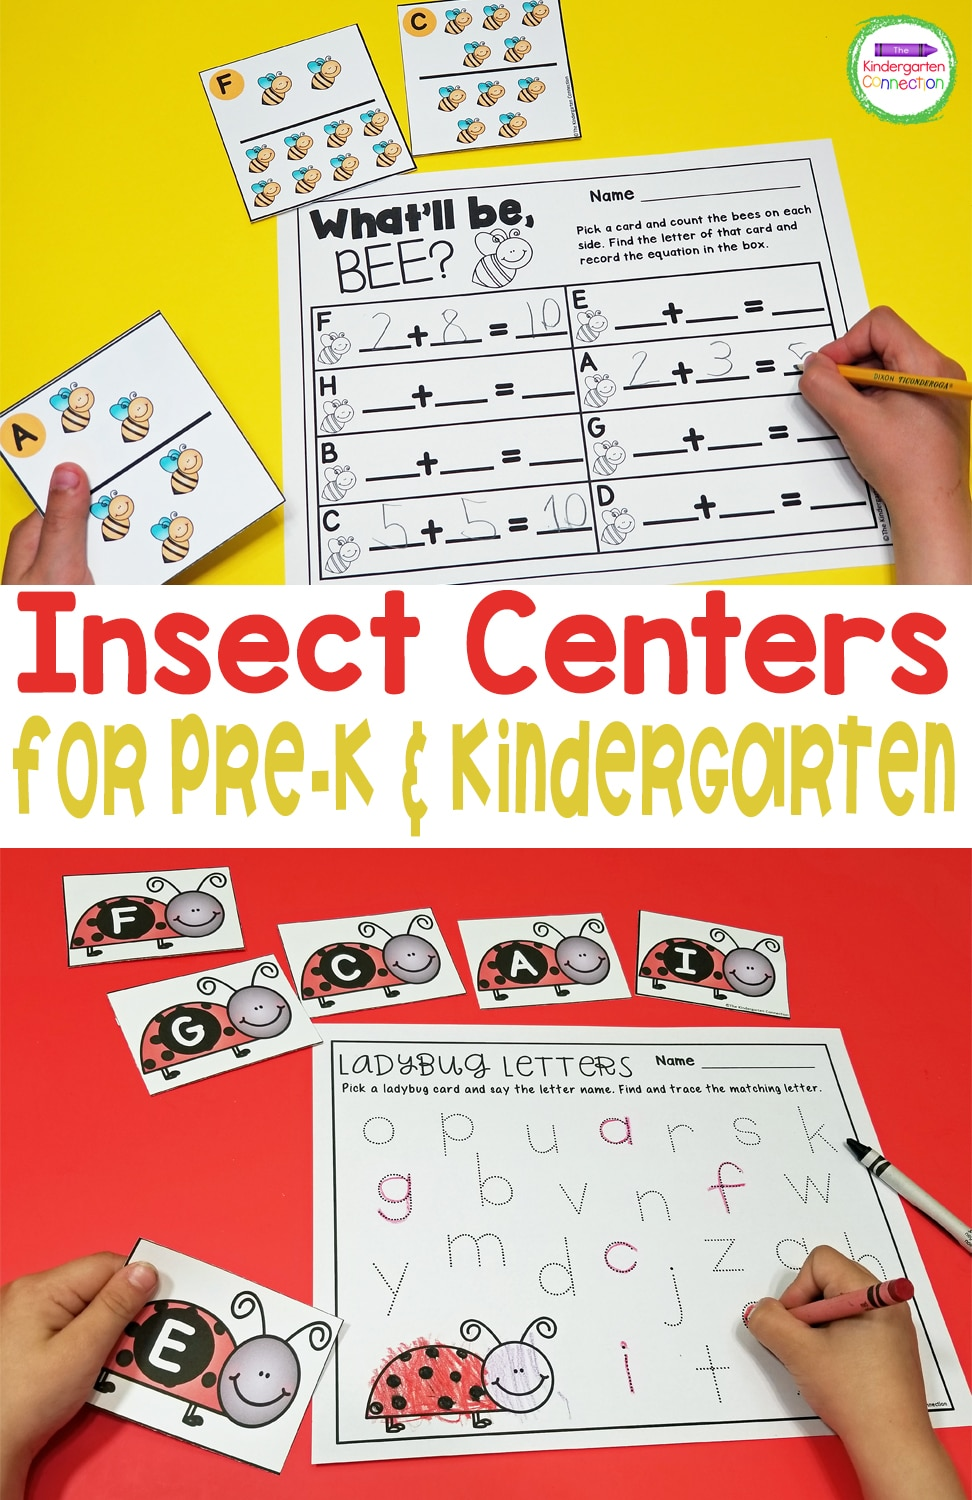 Strengthen important math and literacy skills in a fun, hands-on way with these Insect Centers and Activities for Pre-K & Kindergarten!